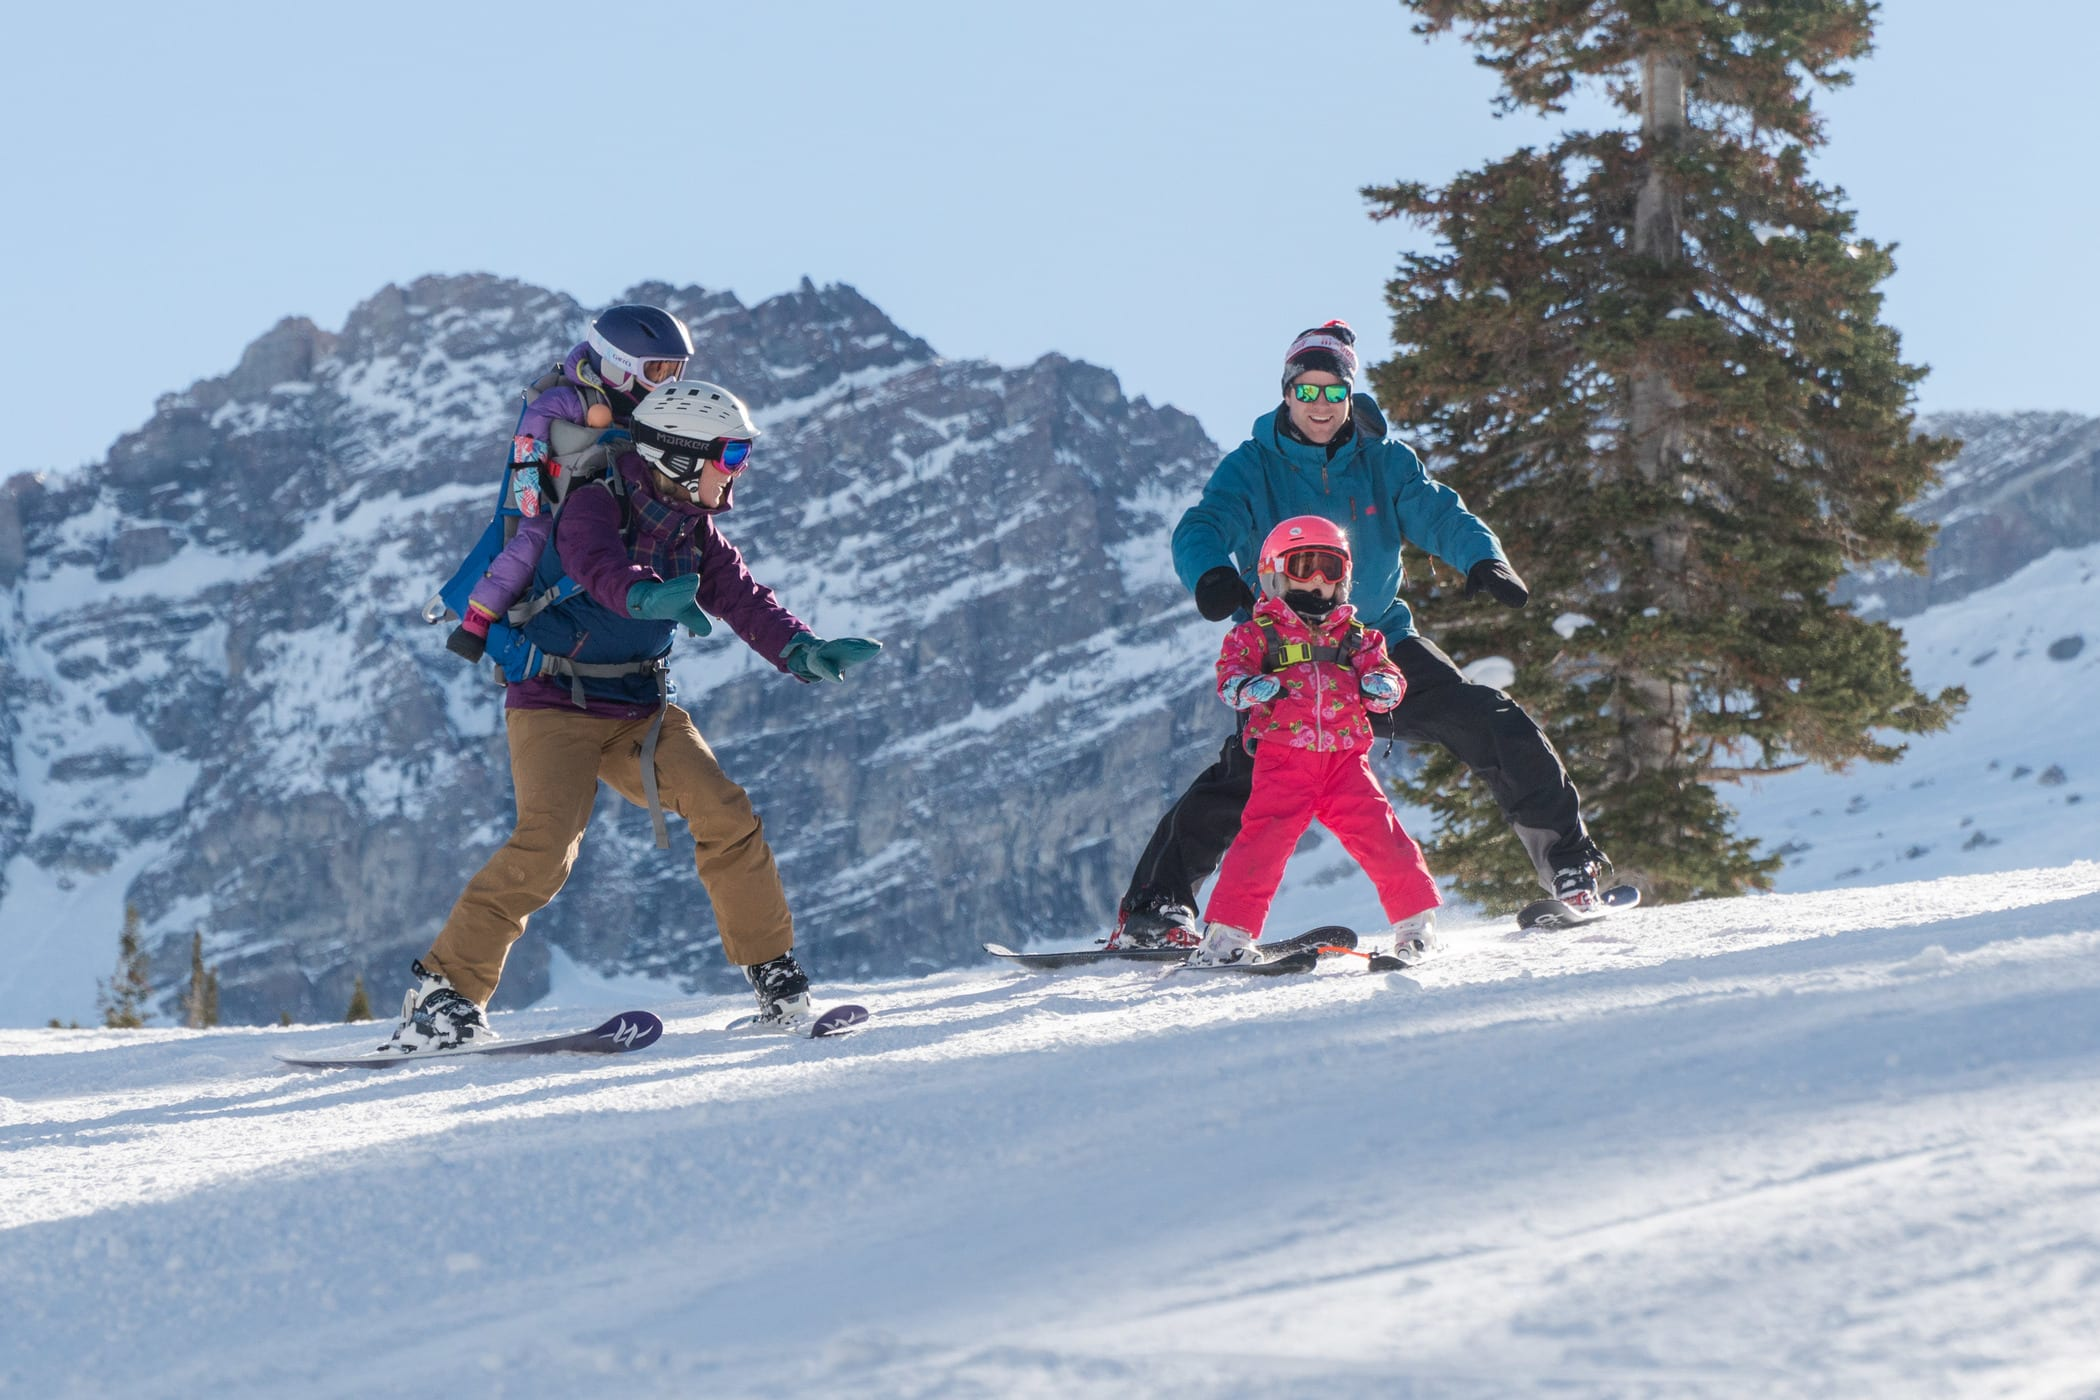 Mom with child in backpack, dad, and daughter skiing down slope